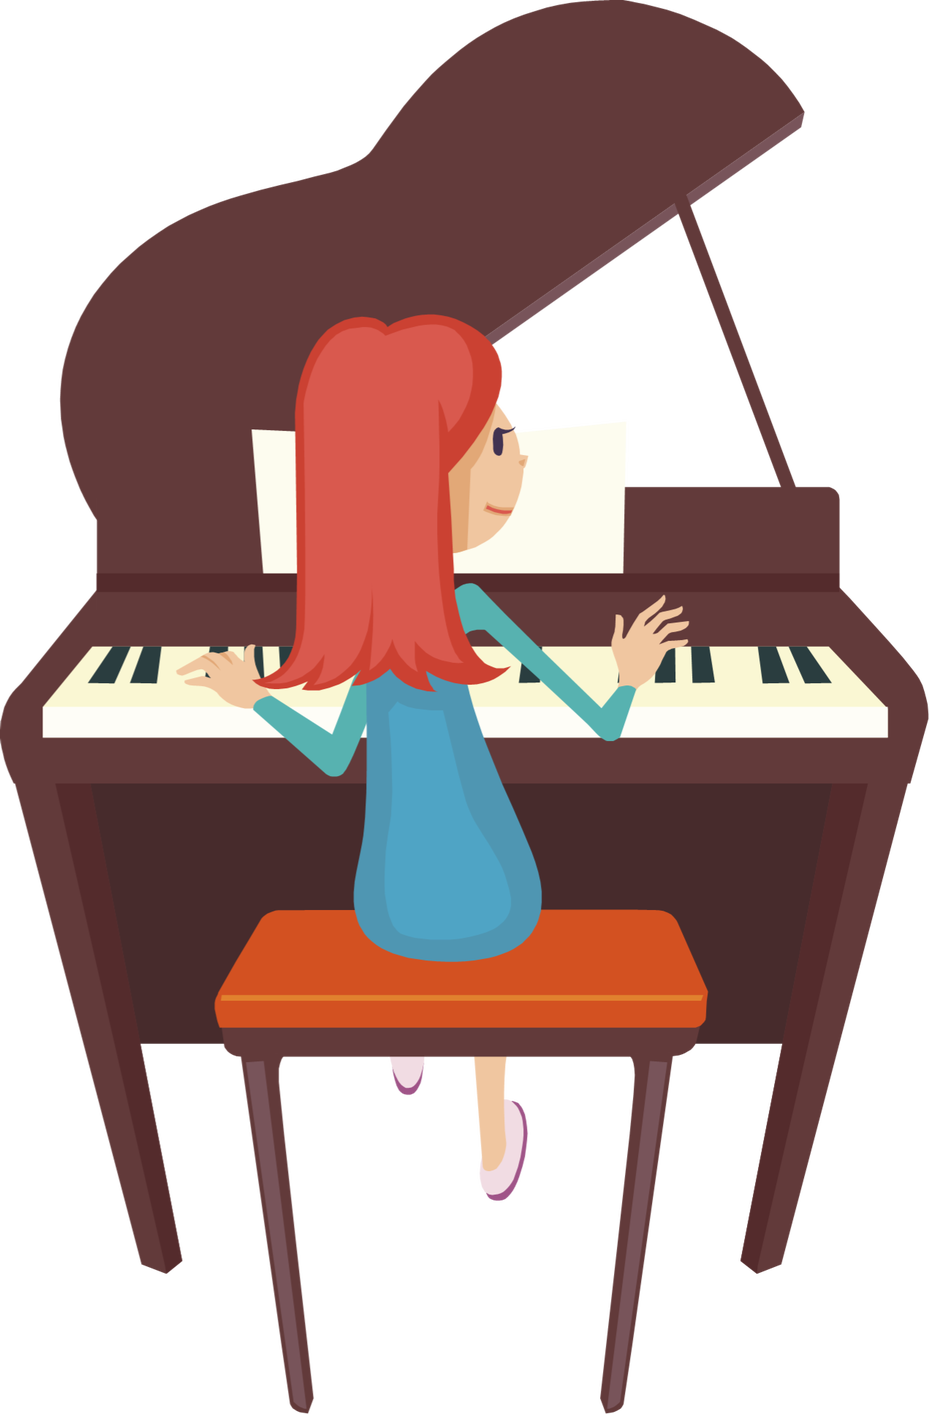 Christ church c of. Piano clipart illustration